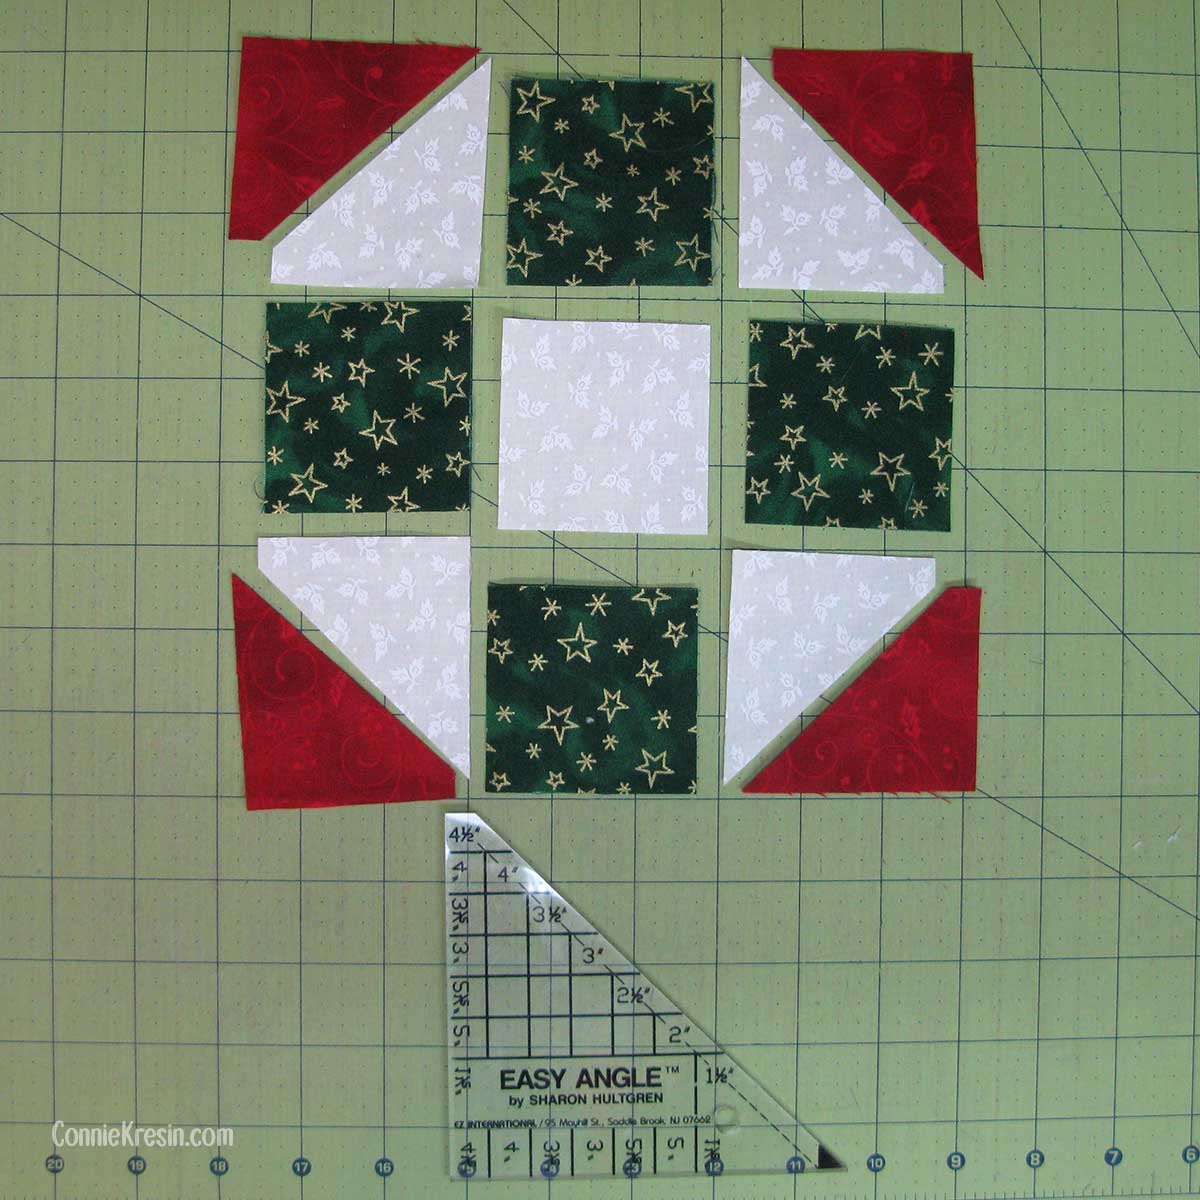 Fabric cut for the mug rug using the Easy Angle ruler